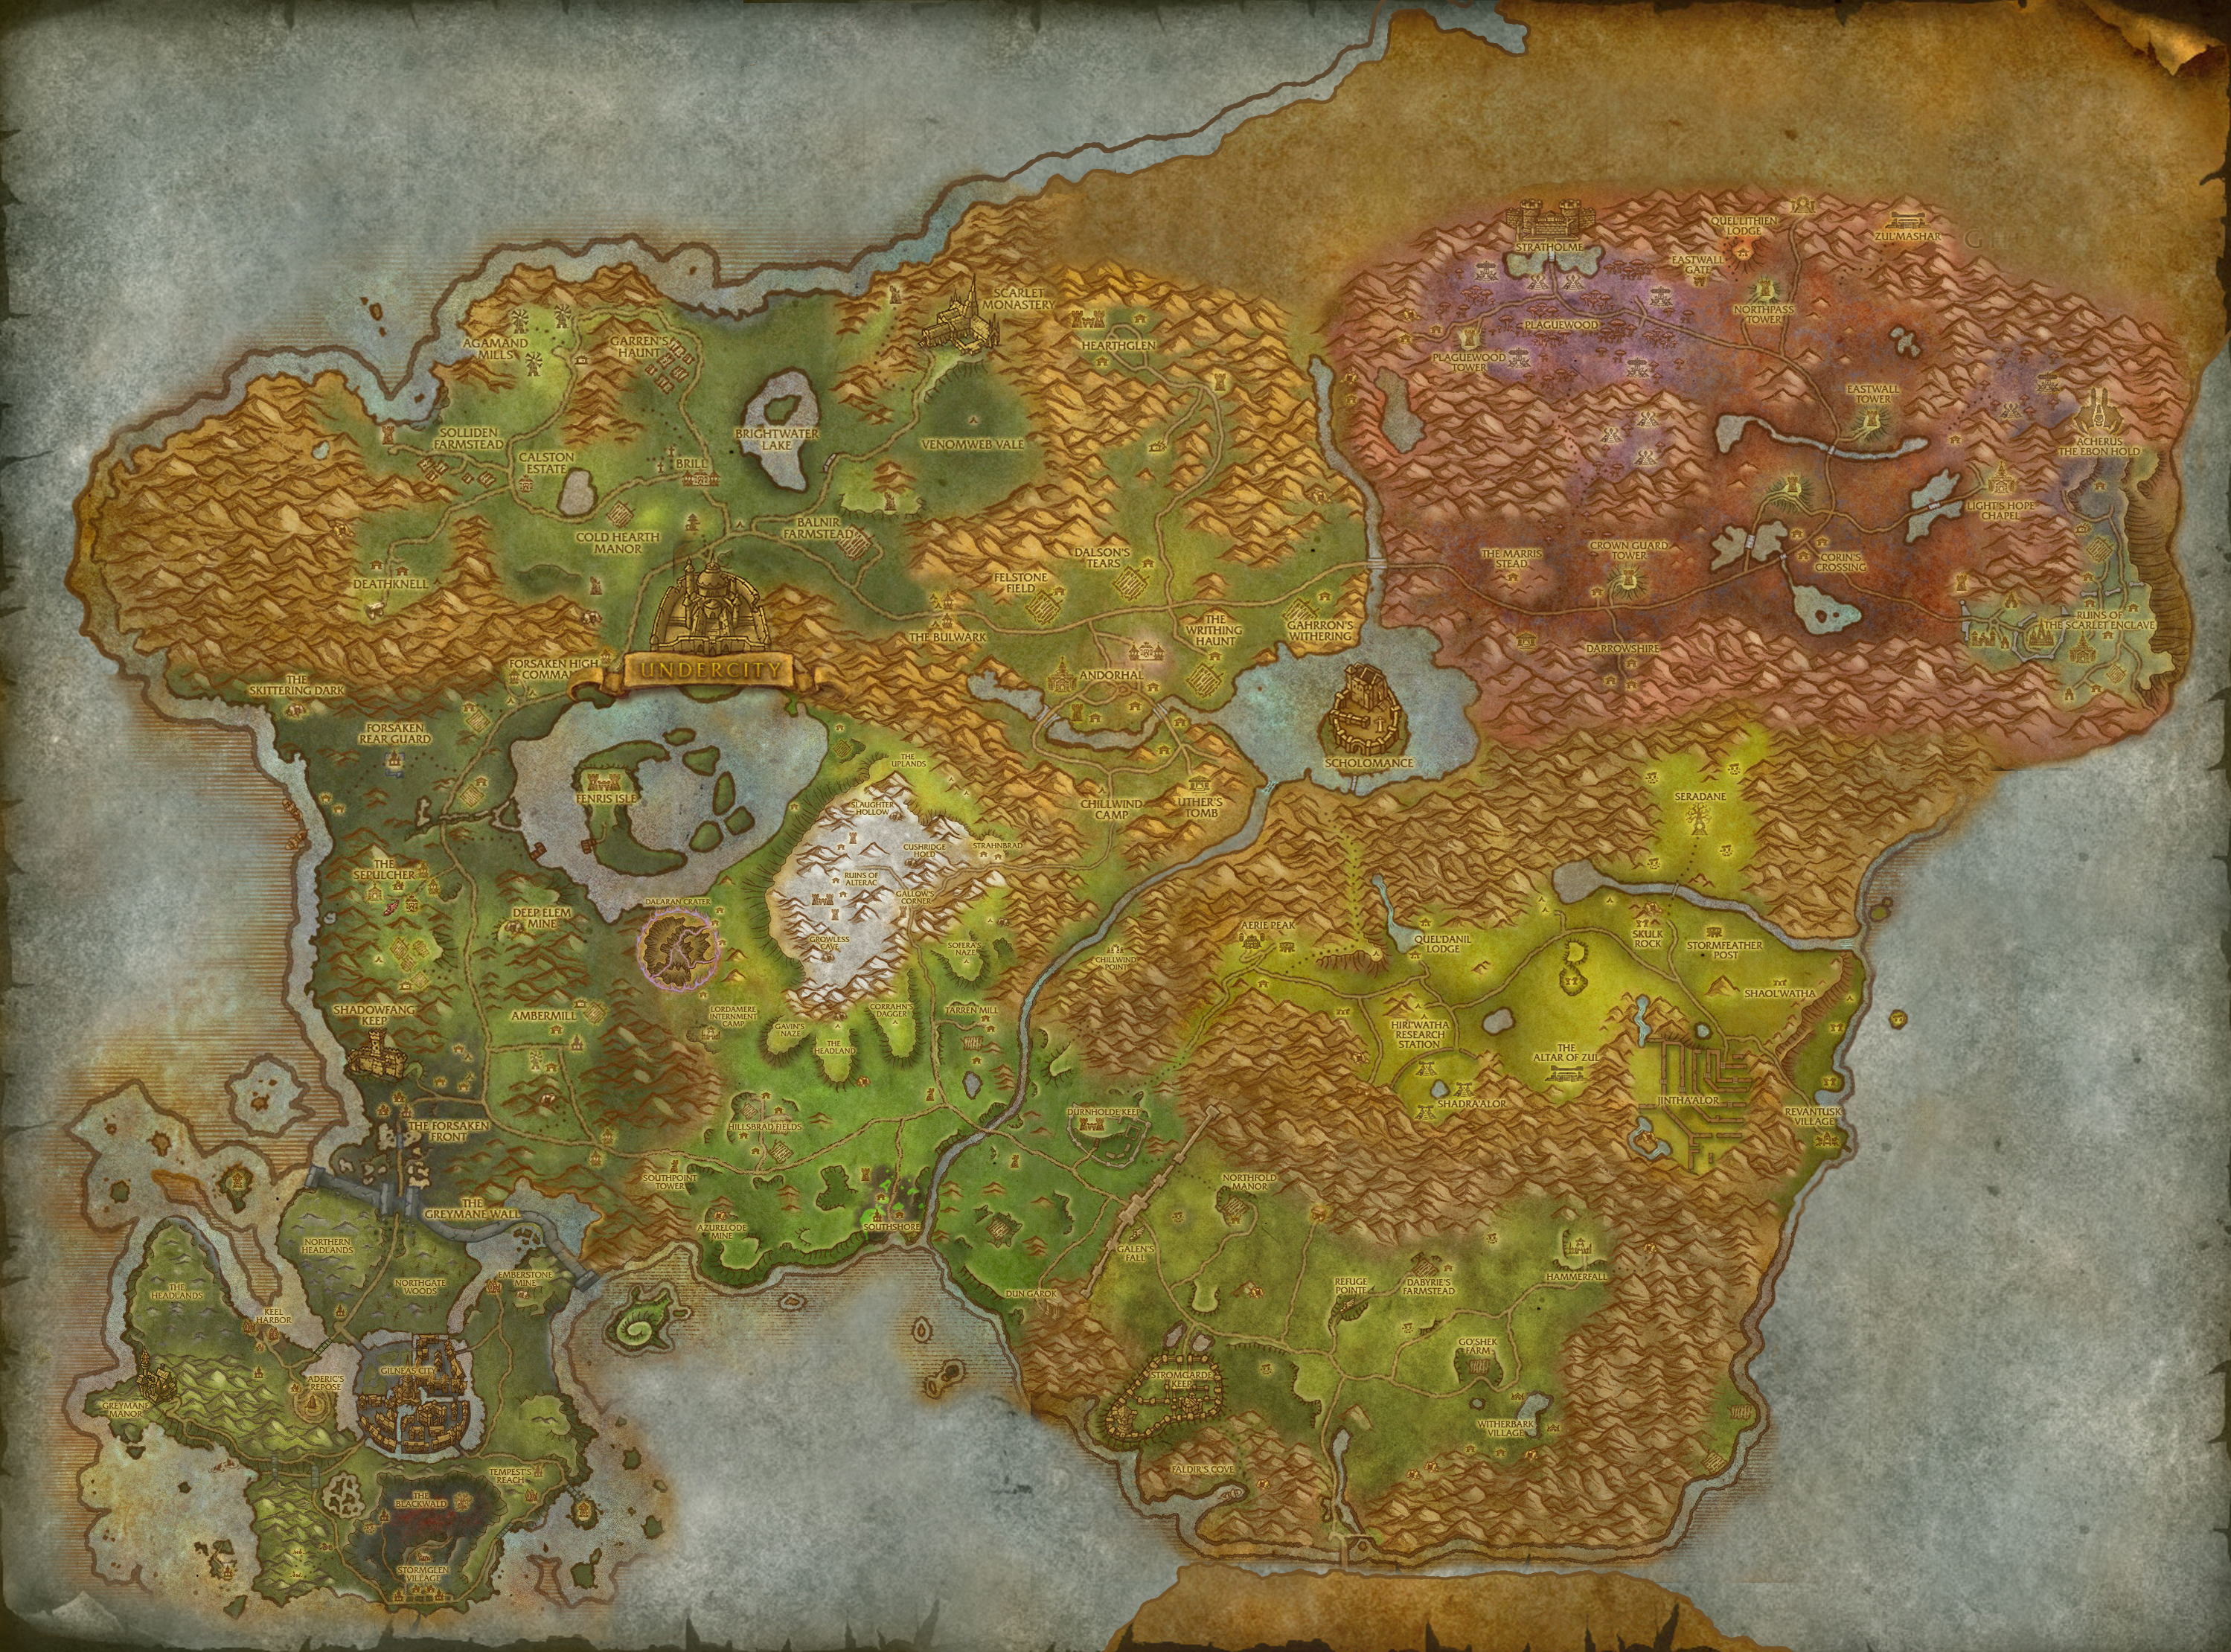 Possible to retrace Arthas footsteps in Lordaeron? - World of ...